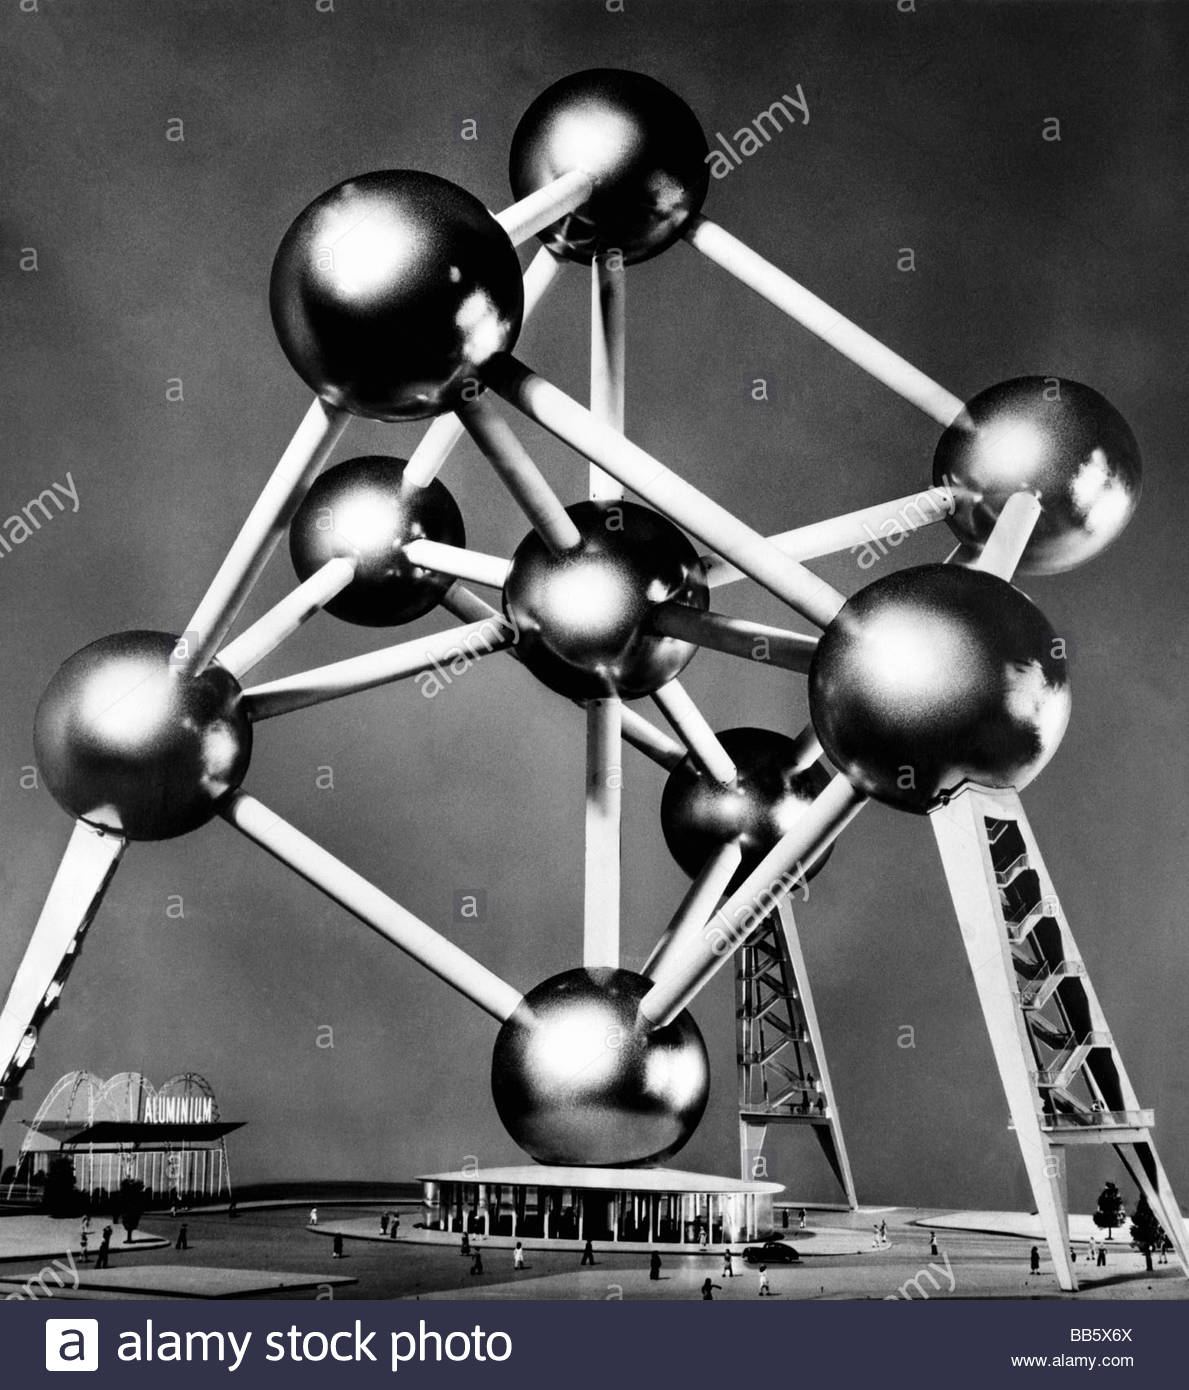 exhibition, world exposition, miniature of Atomium, Brussels, Belgium, 1958, Artist's Copyright must also be - Stock Image